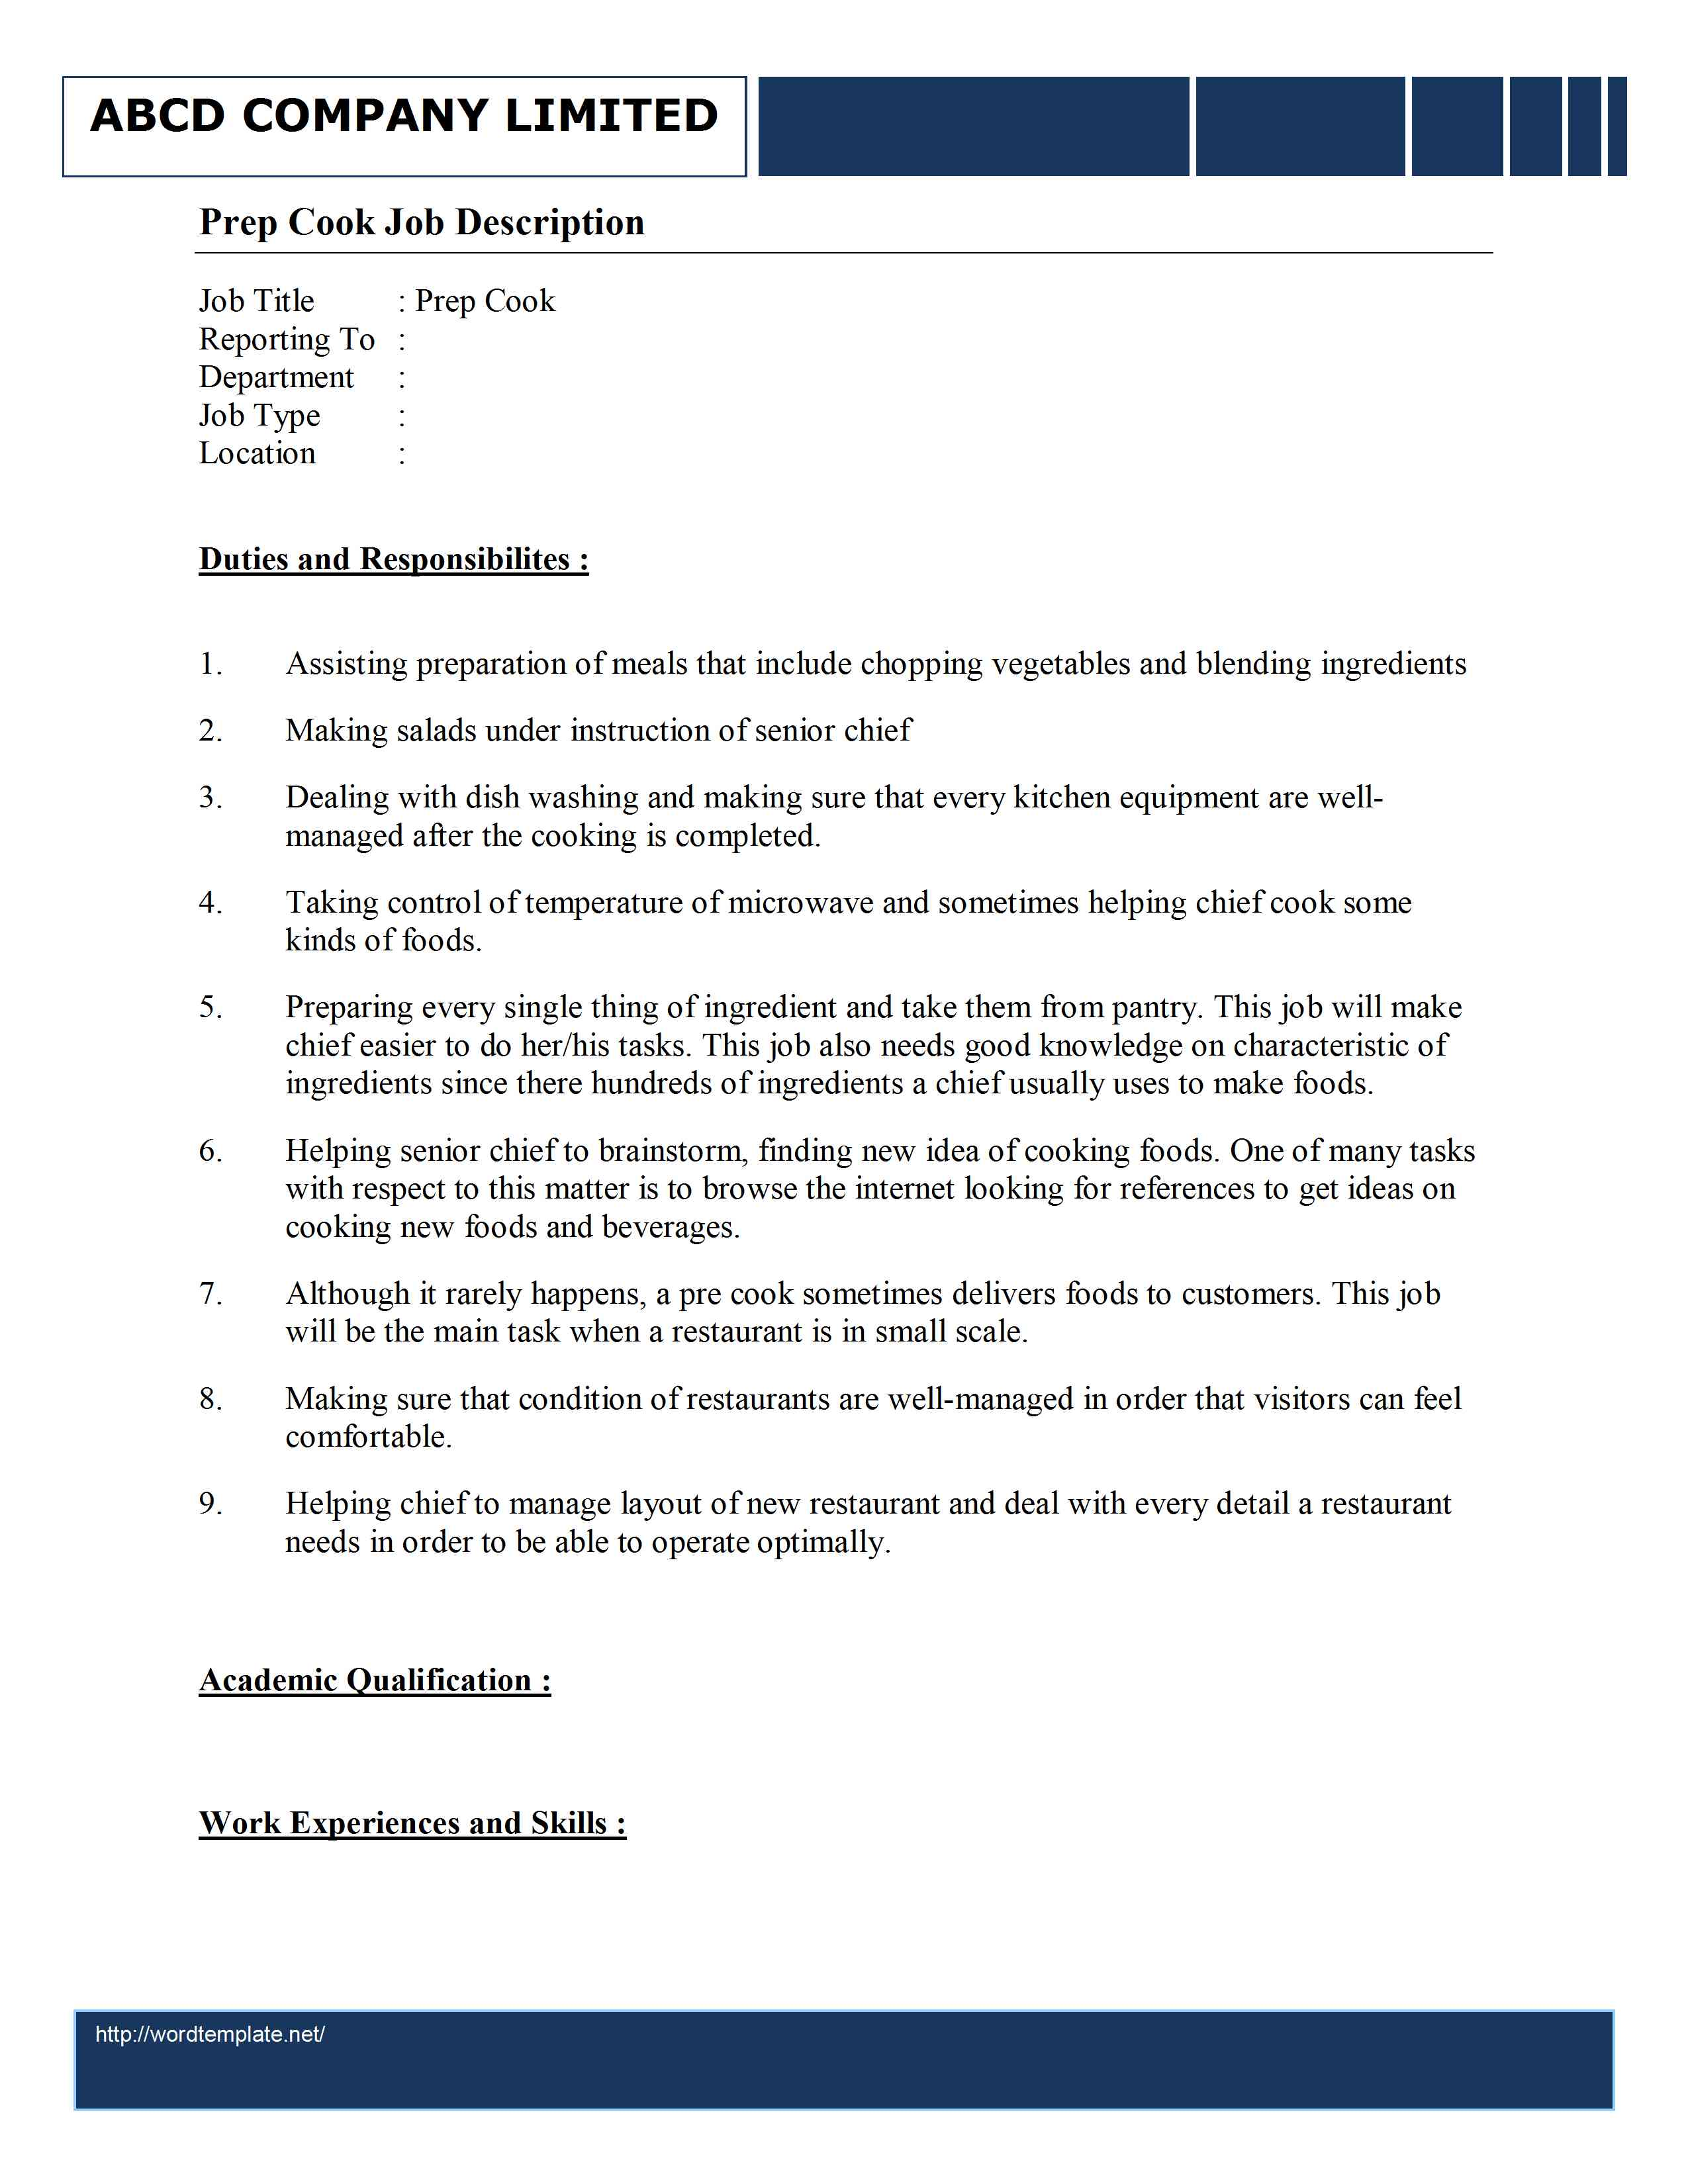 resume examples cooks cover letter examples and samples resume examples cooks cook resume sample job description prep cook resume job line cook resume skills